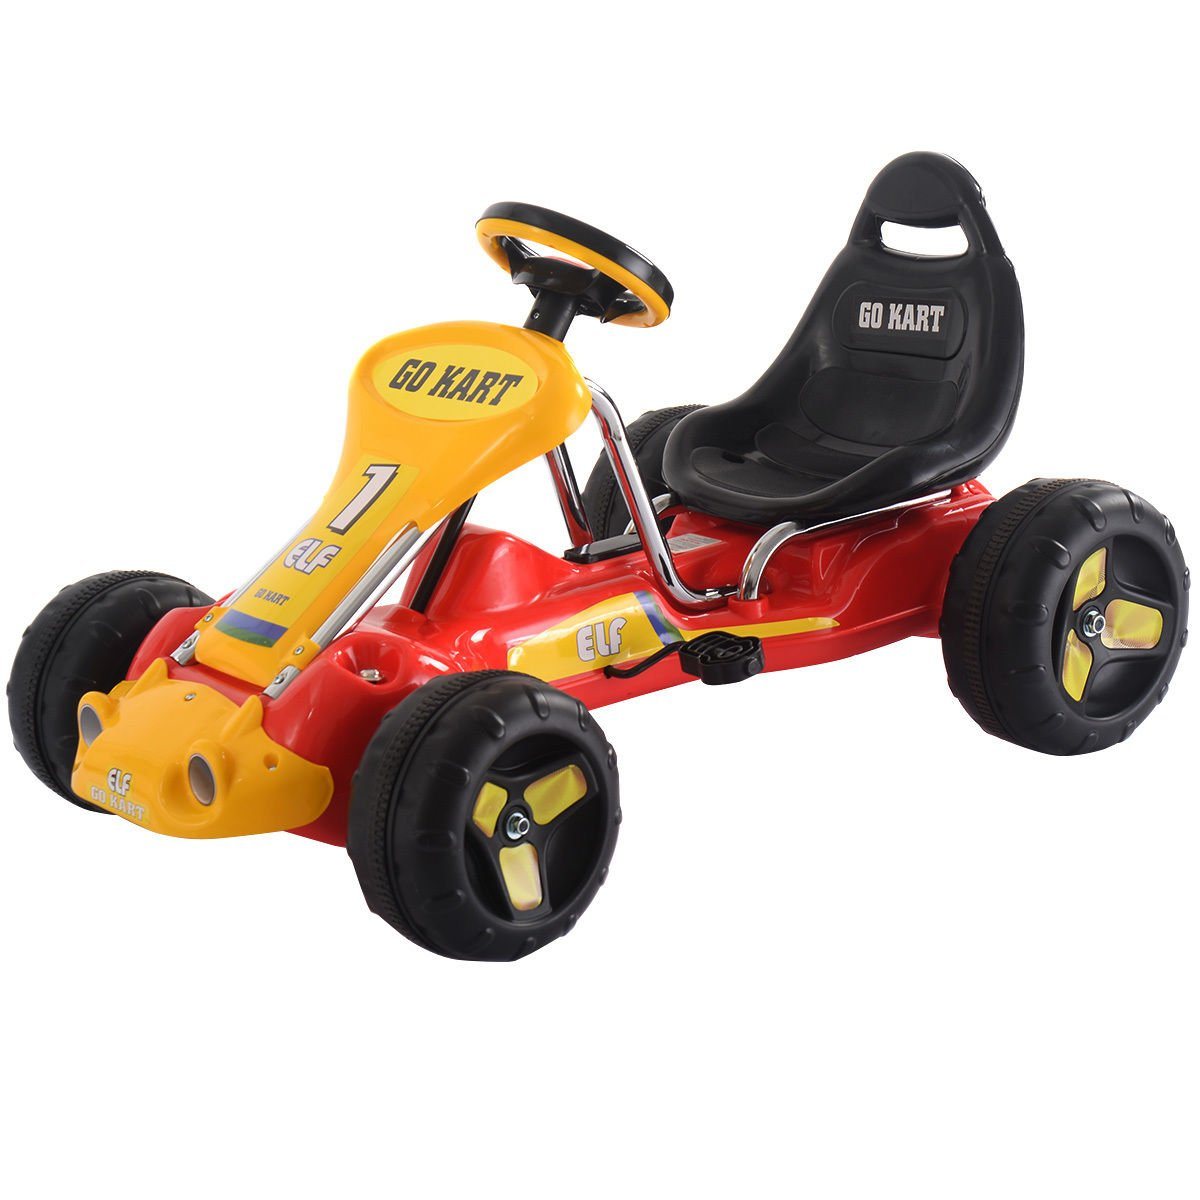 Costzon Go Kart, 4 Wheel Ride on Car, Pedal Powered Ride On Toys for Boys & Girls with Adjustable Seat, Pedal Cart for Kids (Red) by Costzon (Image #1)